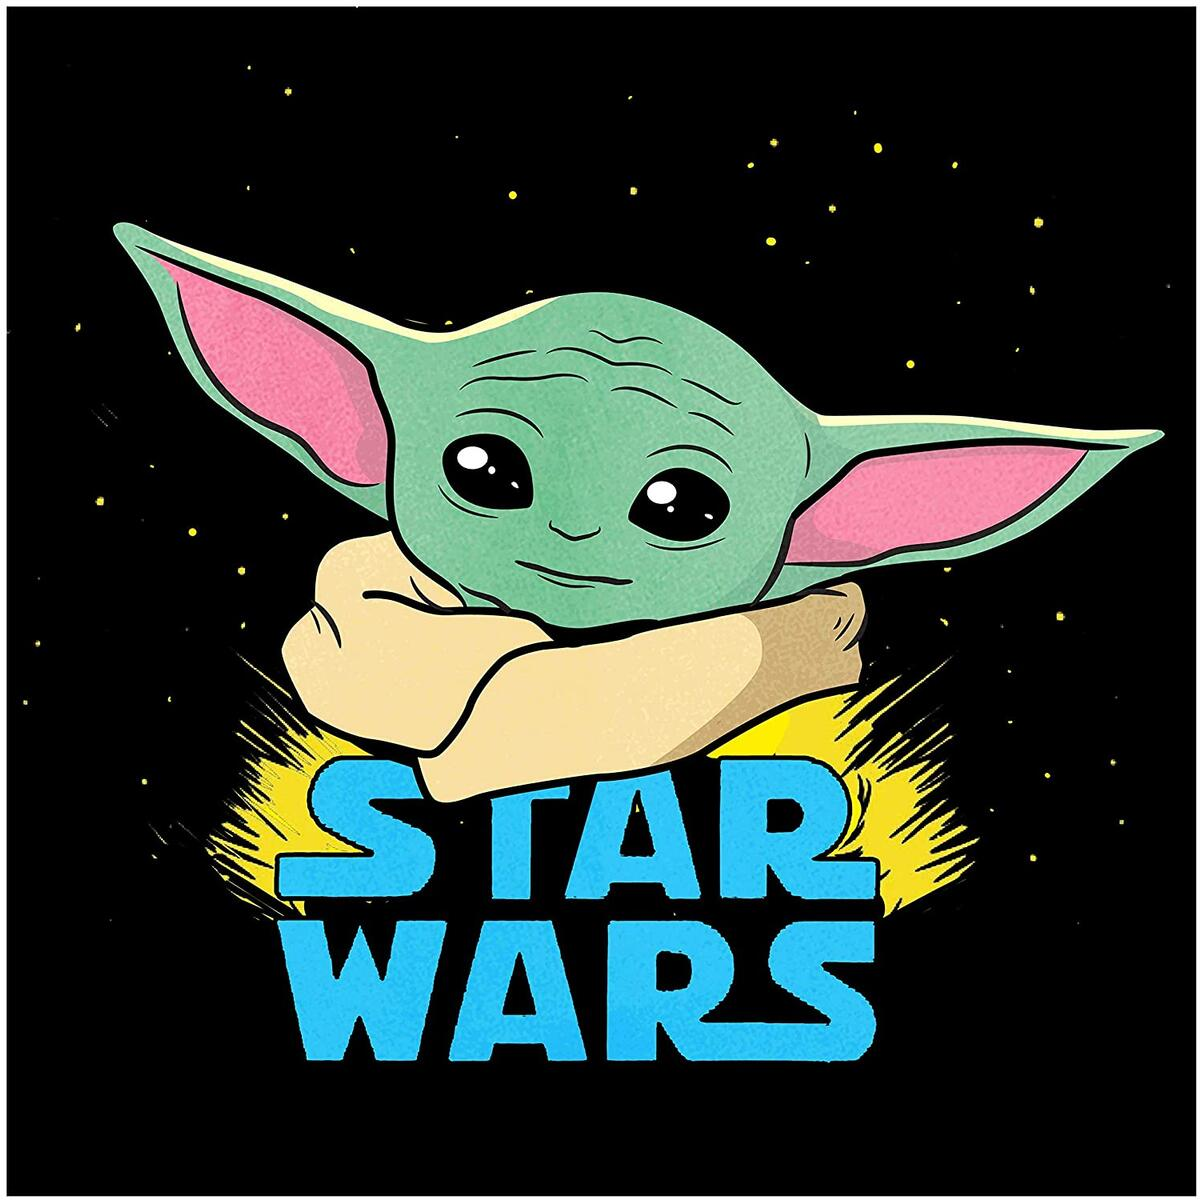 Baby Yoda Diamond Painting Kits for Adults and Kids -  The Mandalorian Child Headshot Star Wars Baby Yoda Paint by Number with Gems Craft Kit 8.7